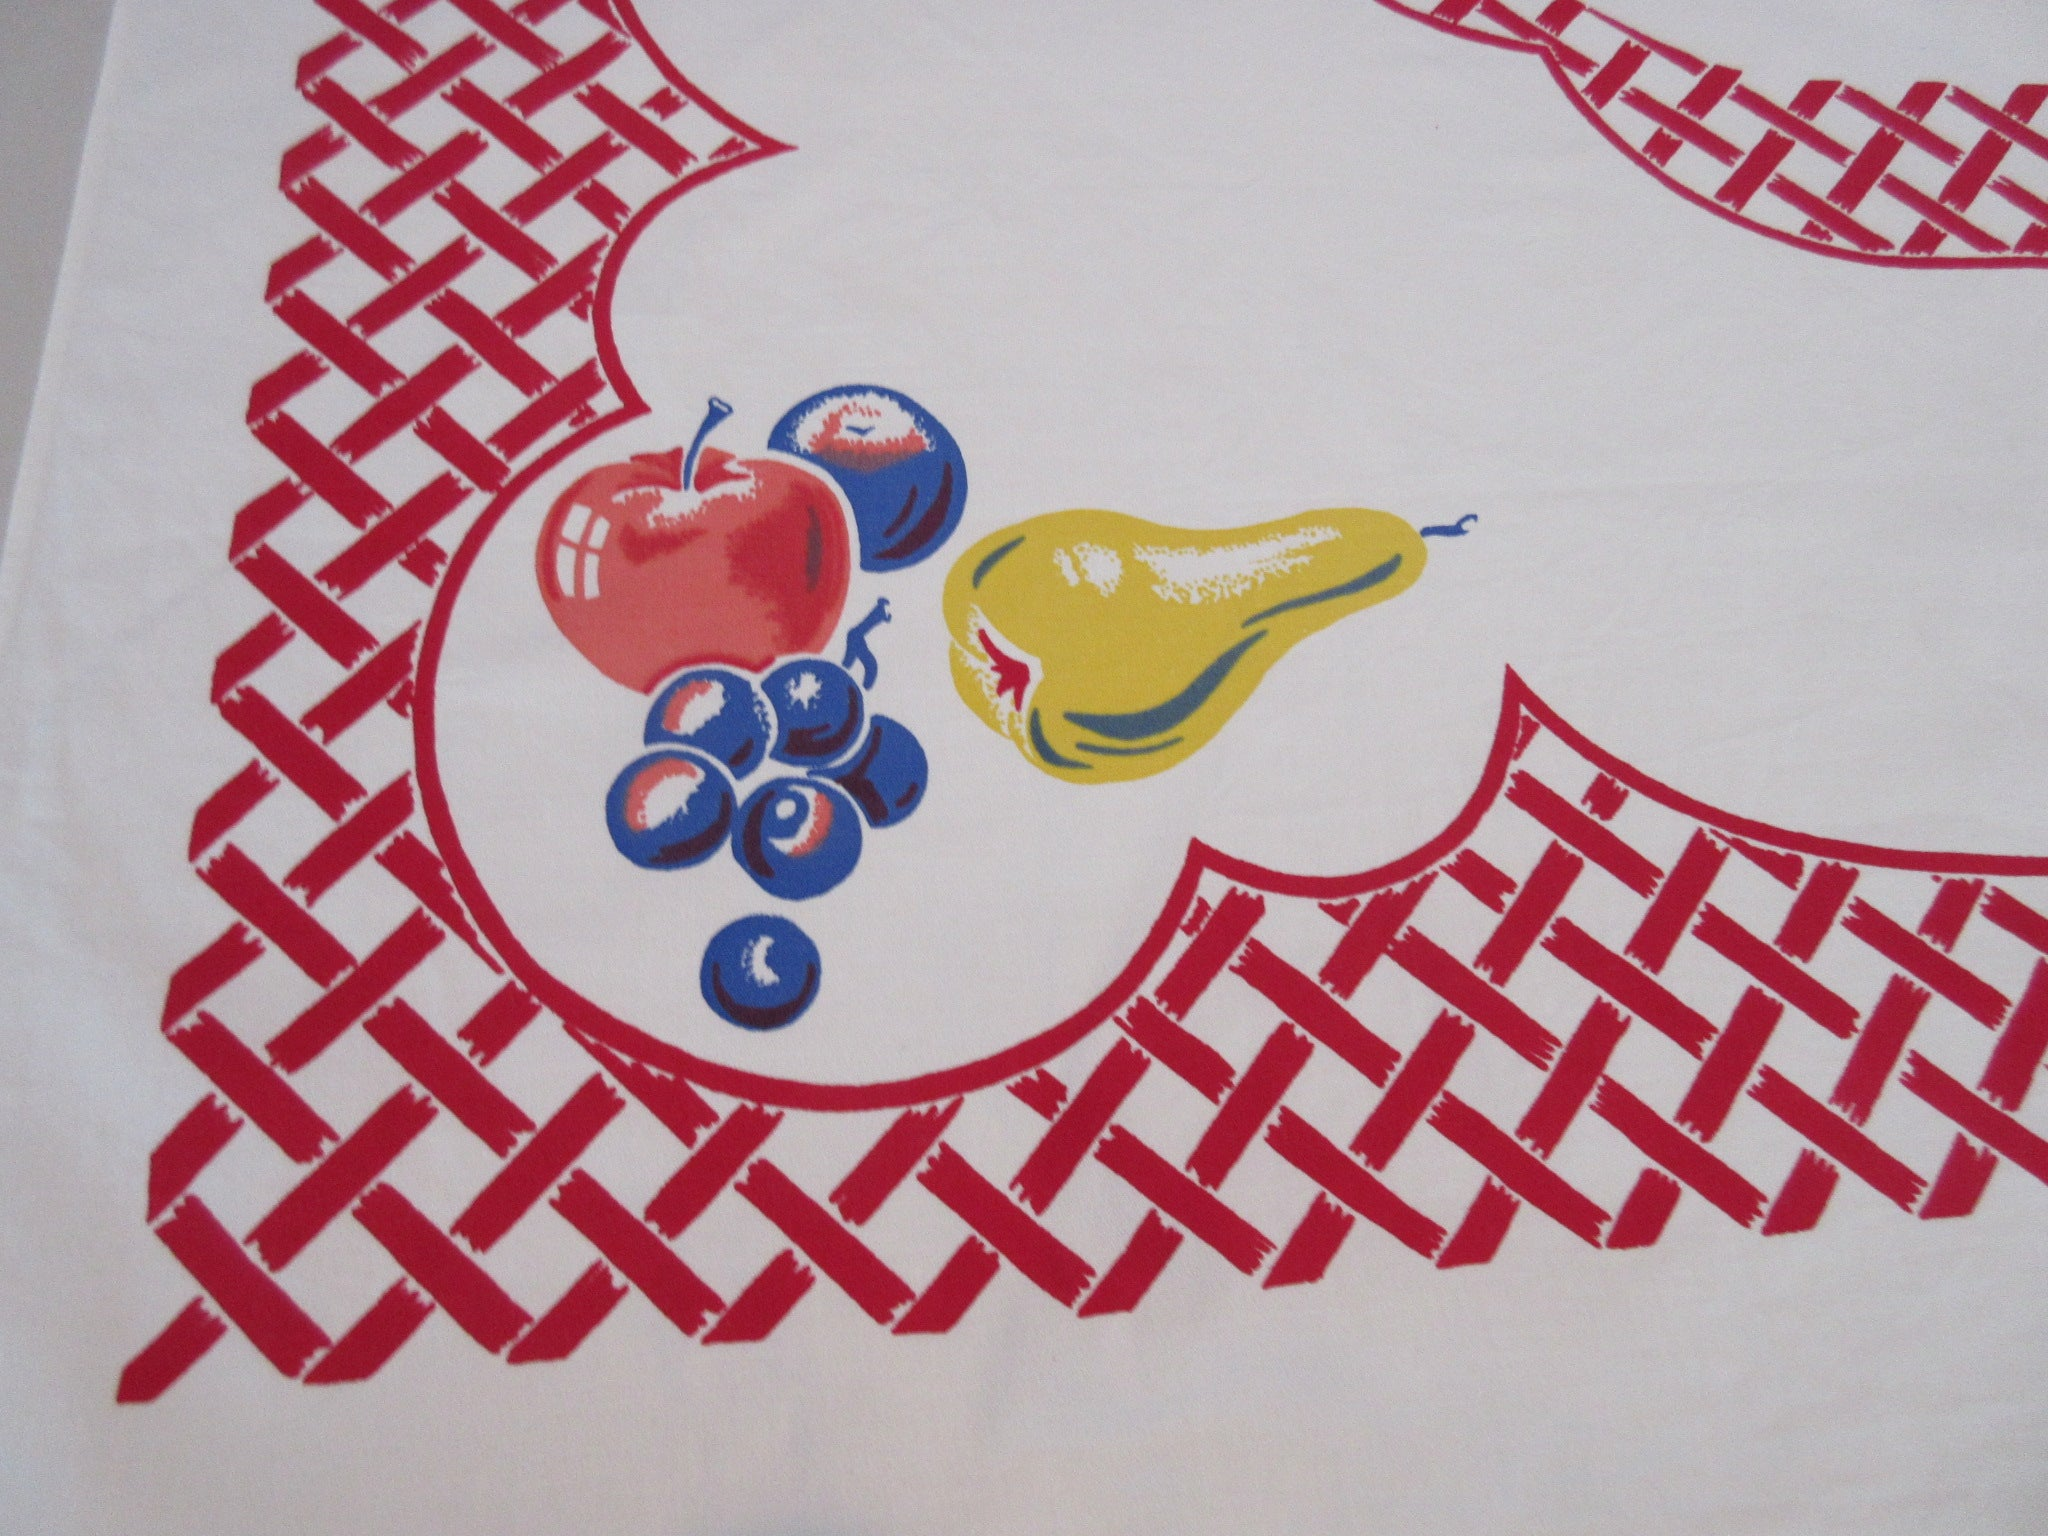 Simtex Primary Apples Pears on Red Basketweave Vintage Printed Tablecloth (67 X 52)